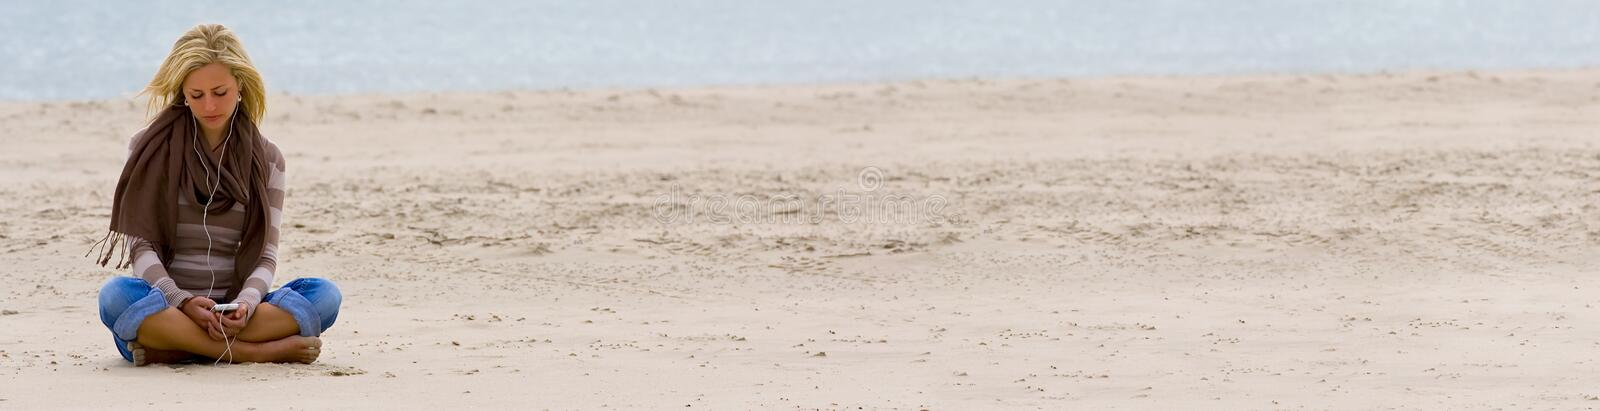 Woman Girl on Beach Listening to Music on Smart Phone stock photos